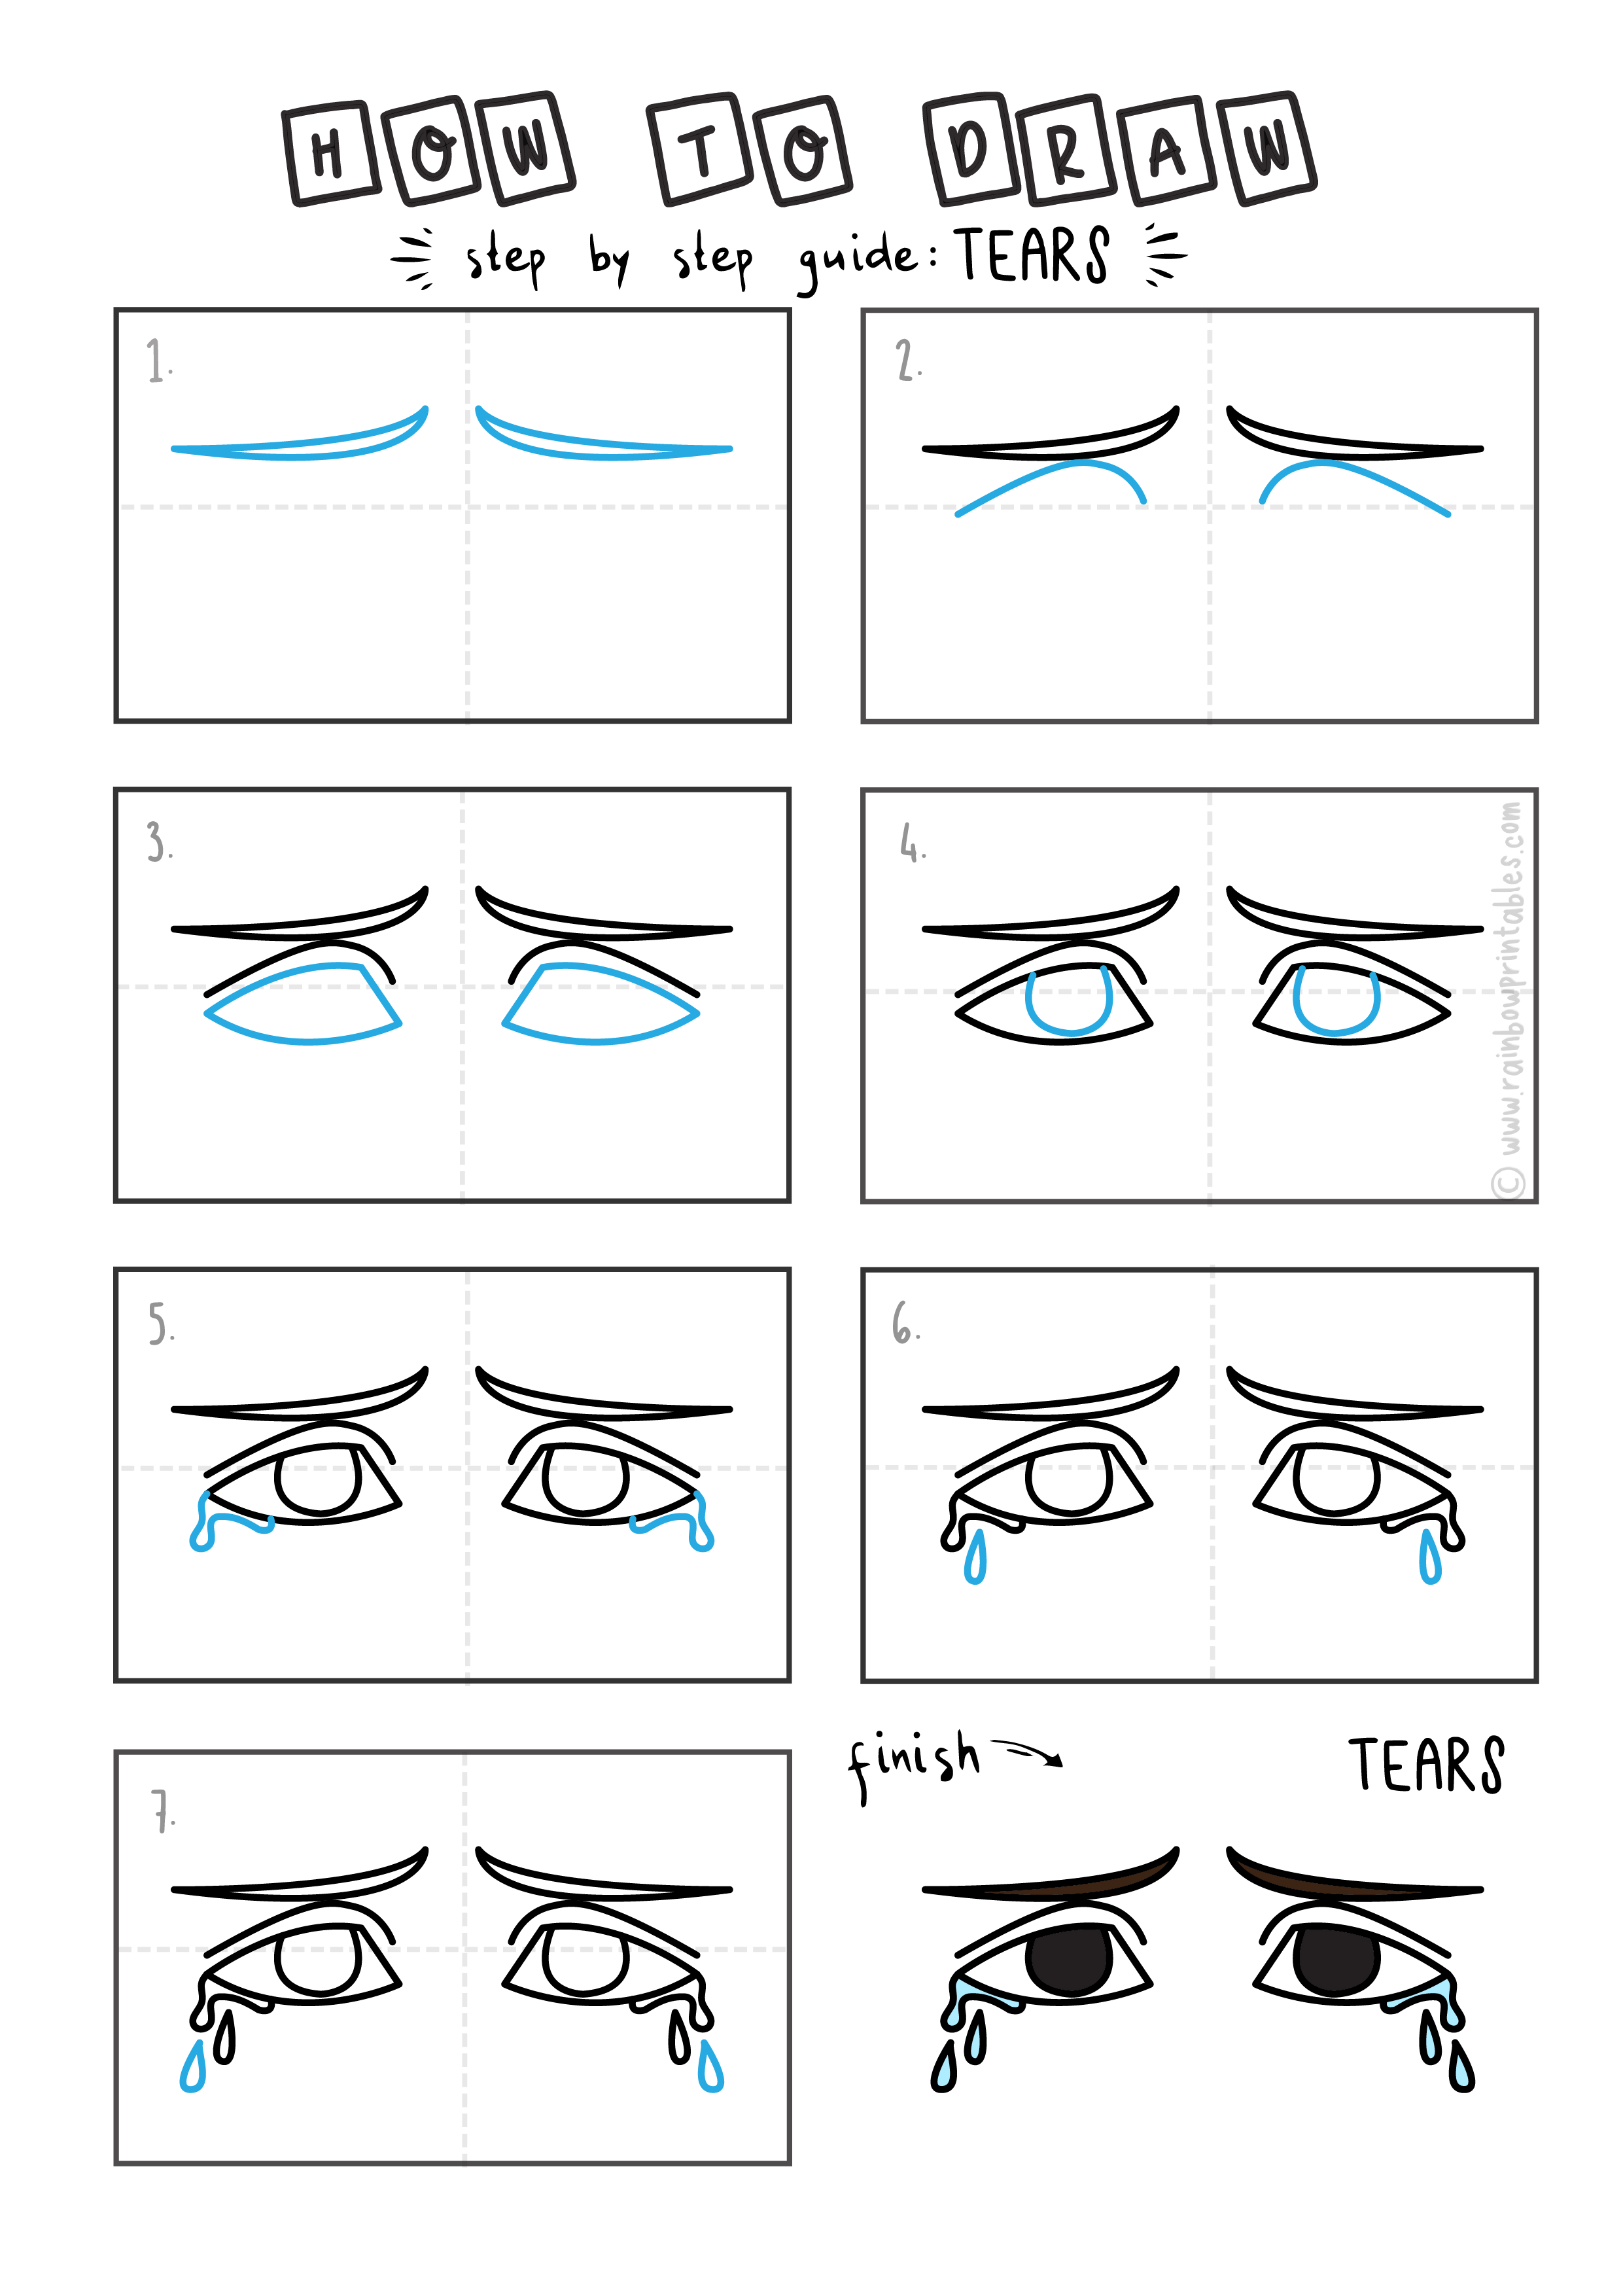 HOW TO DRAW TEARS CRYING SADNESS EYES FACE FOR KIDS EASY GUIDE EMOTIONS Final